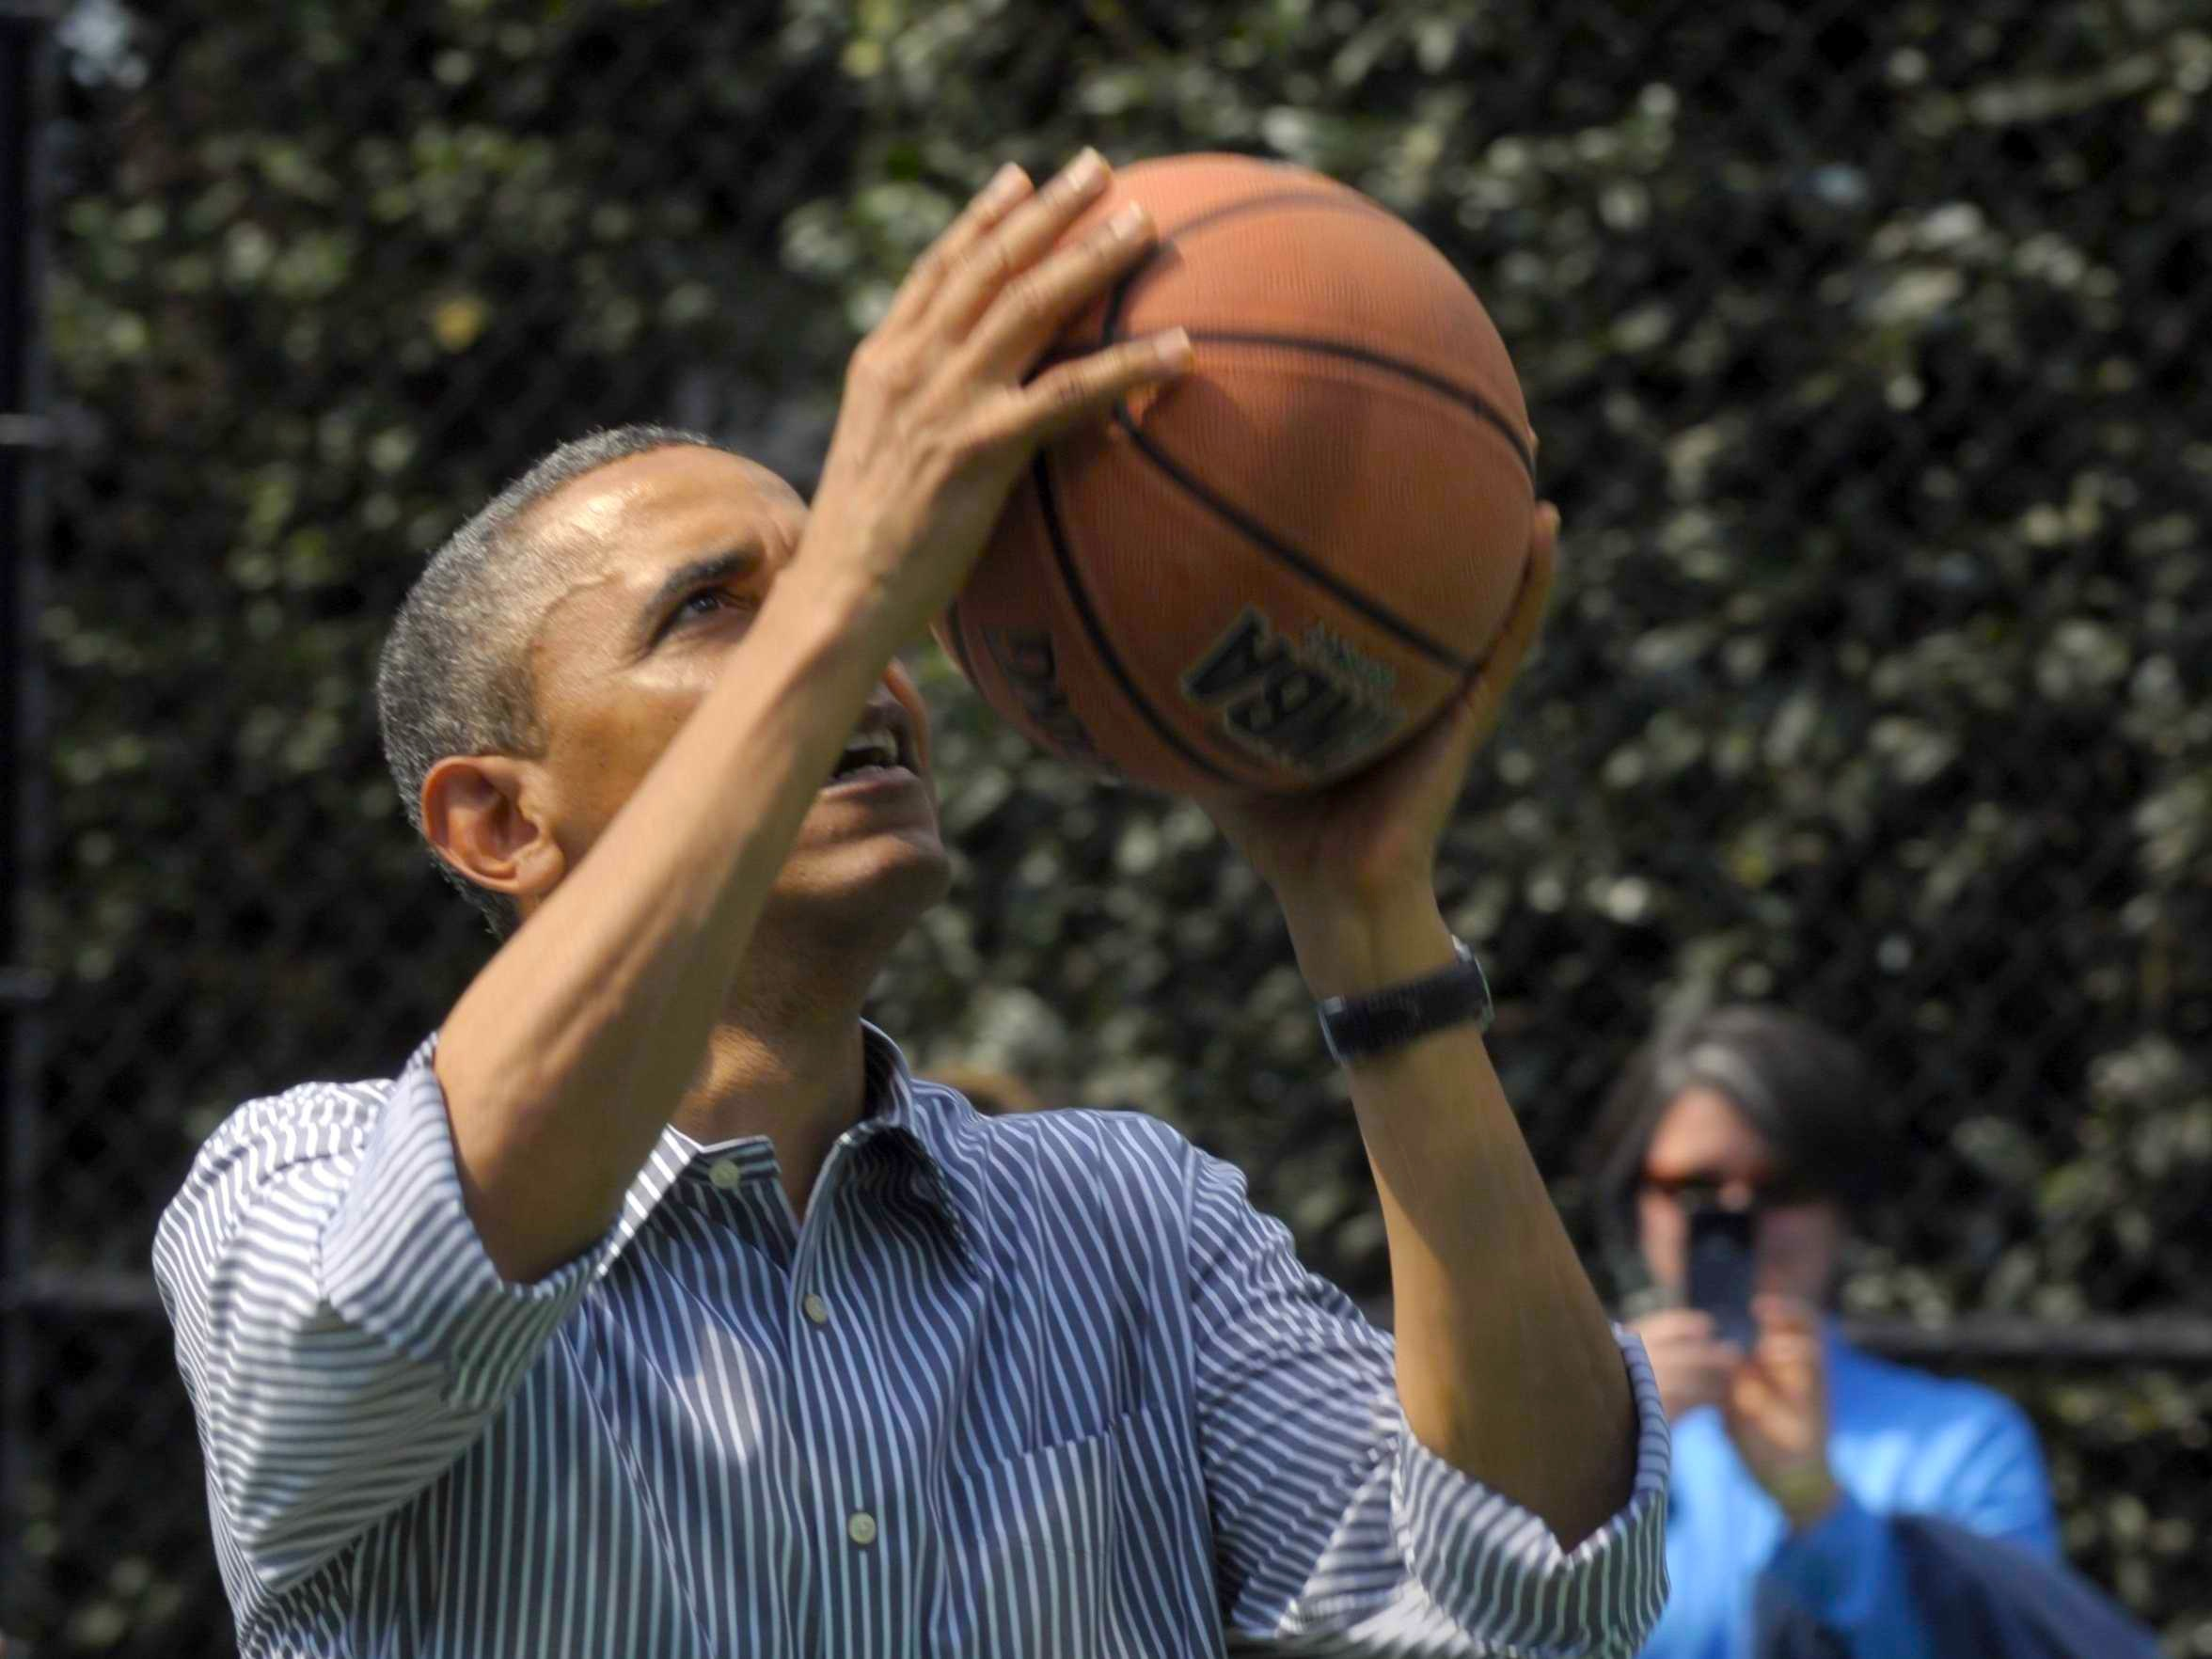 heres-video-of-obamas-horrid-2-for-22-performance-on-the-basketball-court-today